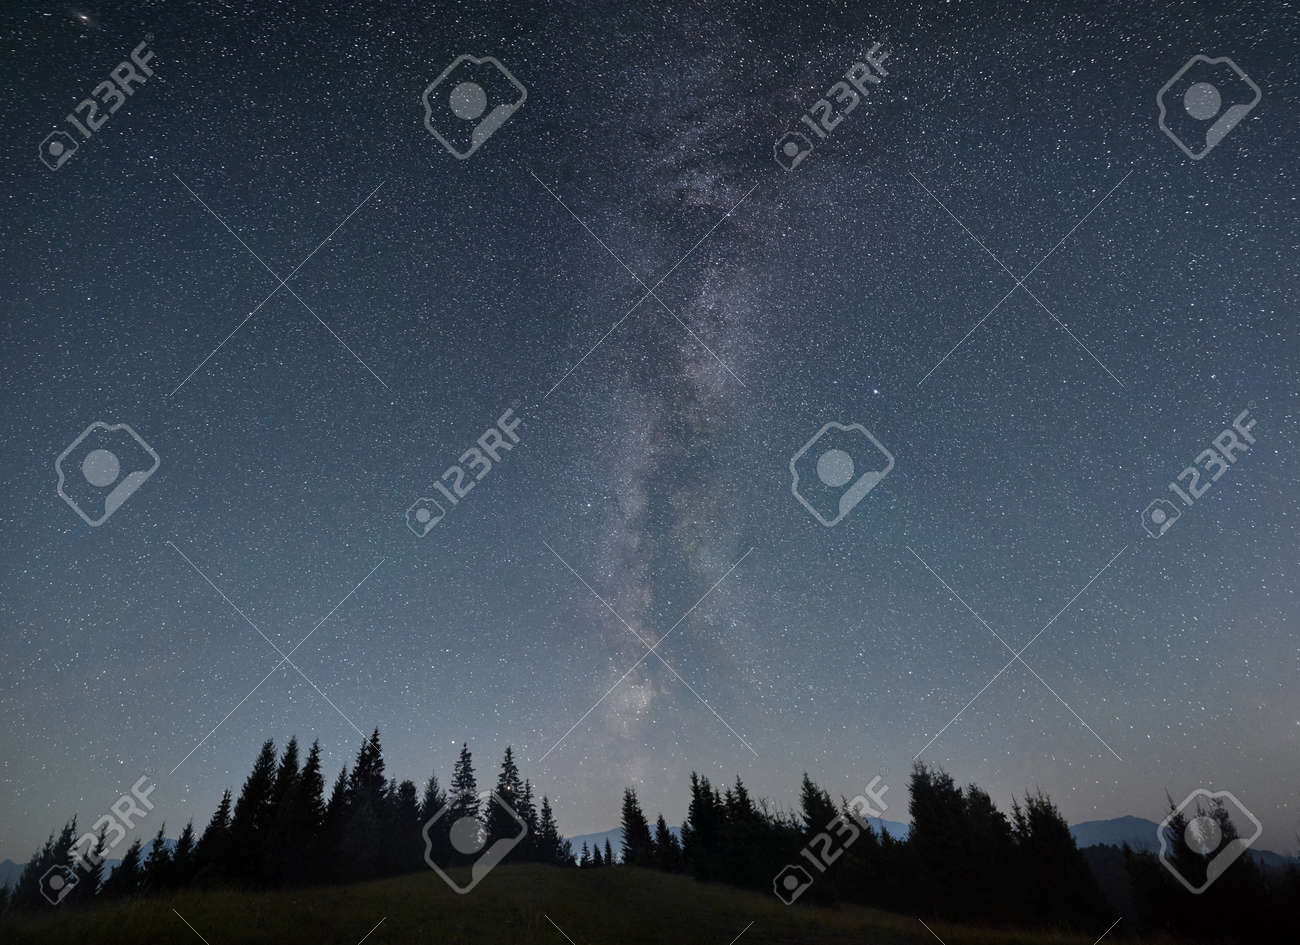 Night sky full of stars, Milky way in the mountains in summer. Galaxy above the hillside, beautiful night scene. Space background. Copy space. Astrophotography - 173107386